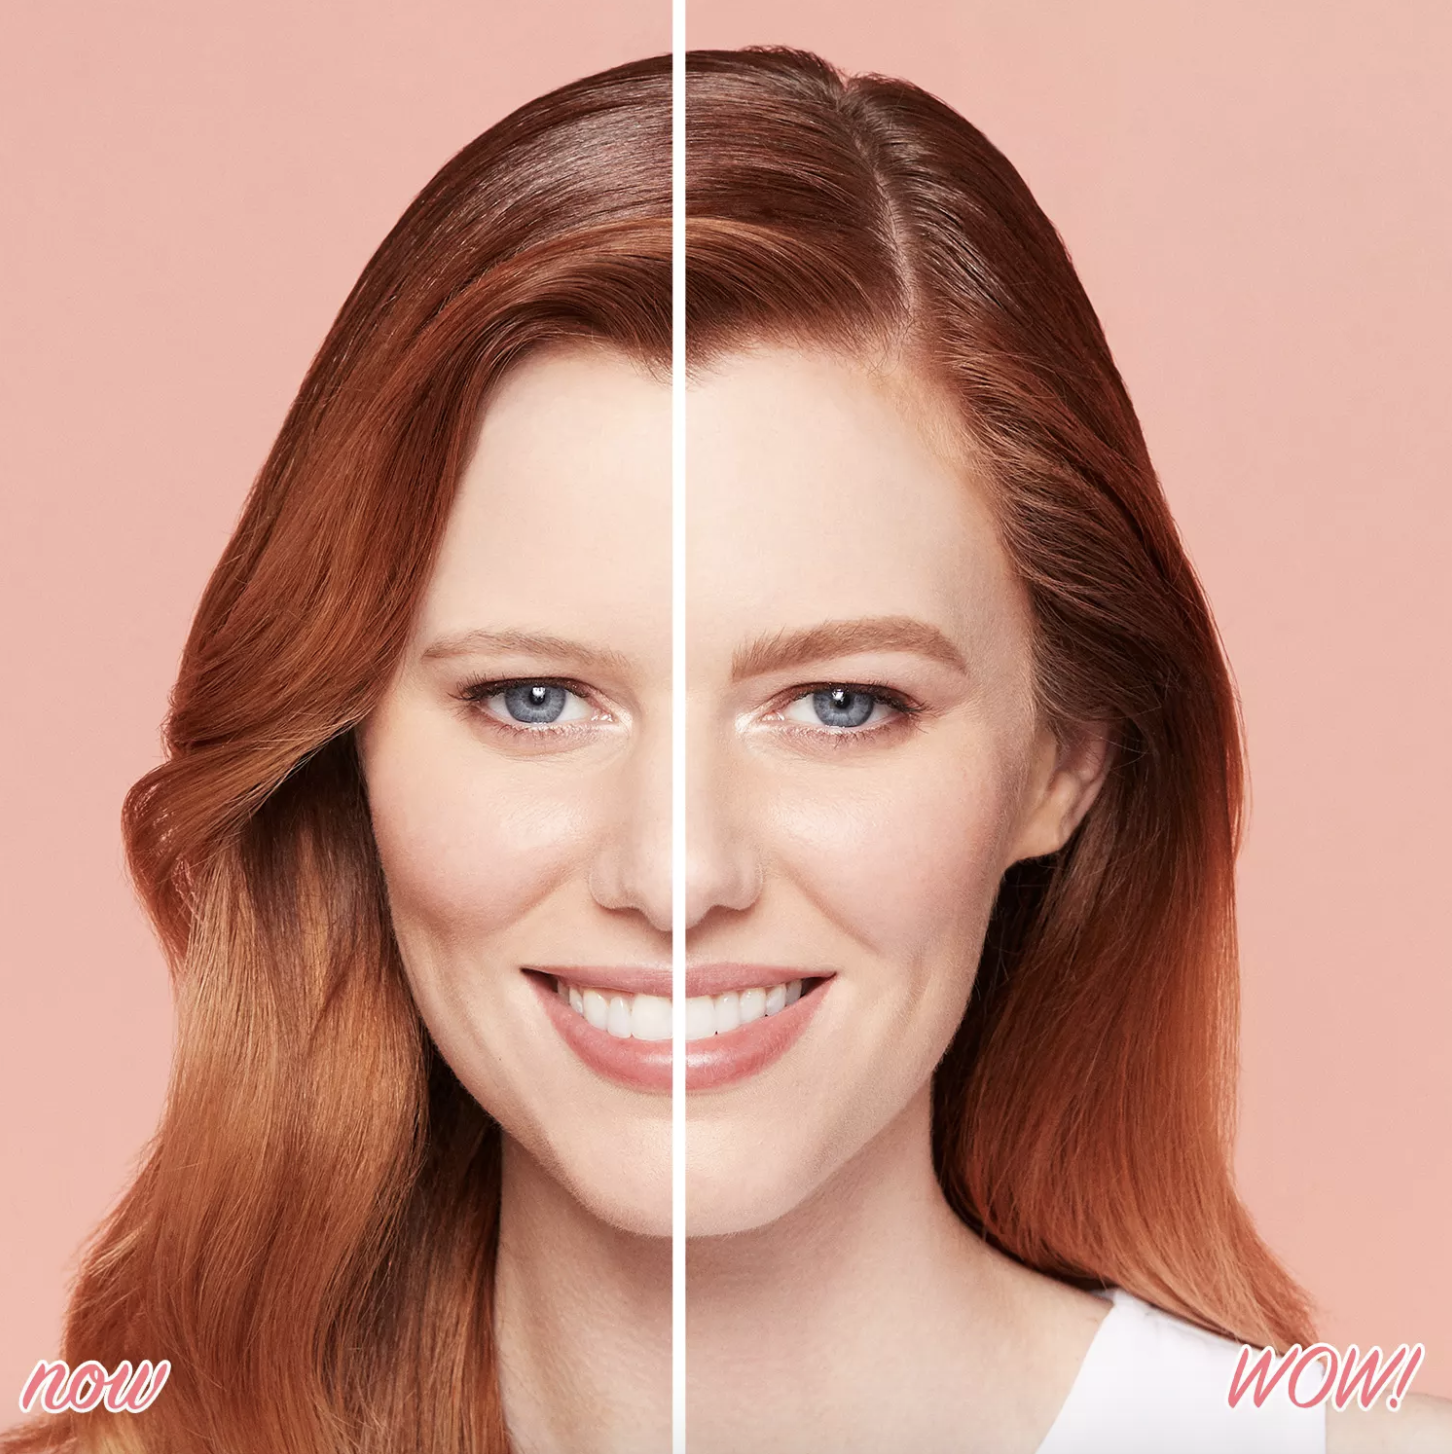 Benefit Cosmetics Creates Brow Shades for Redheads and Grey Hair (Finally!)